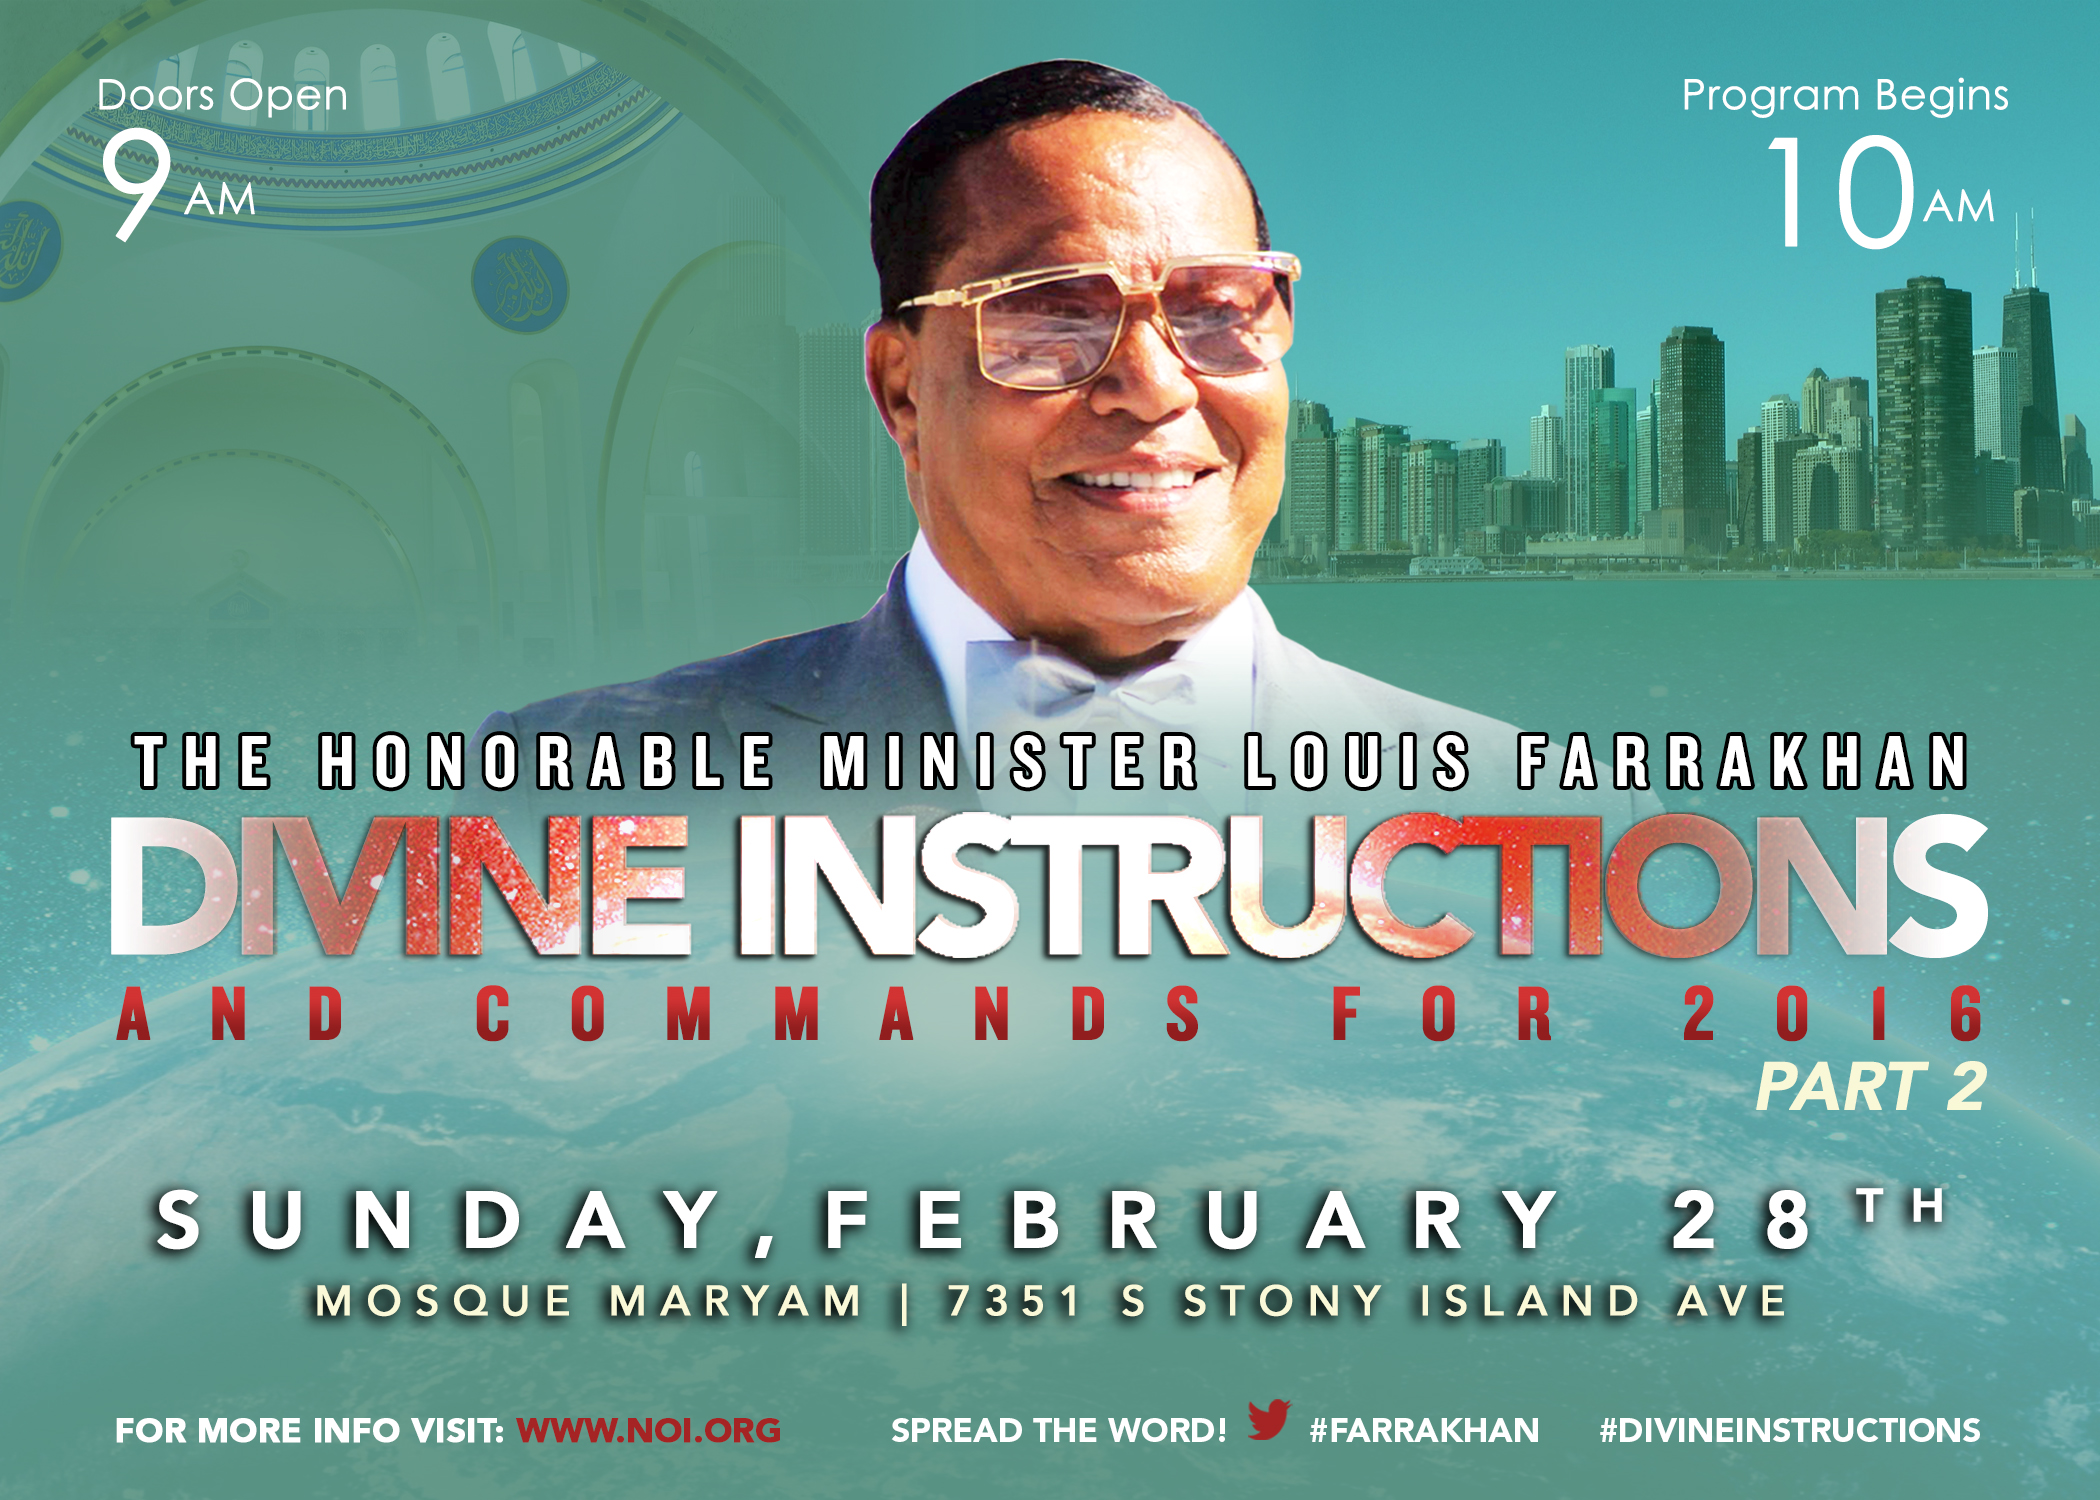 [Full Replay] Part 2: Divine Instructions and Commands for 2016 #Farrakhan